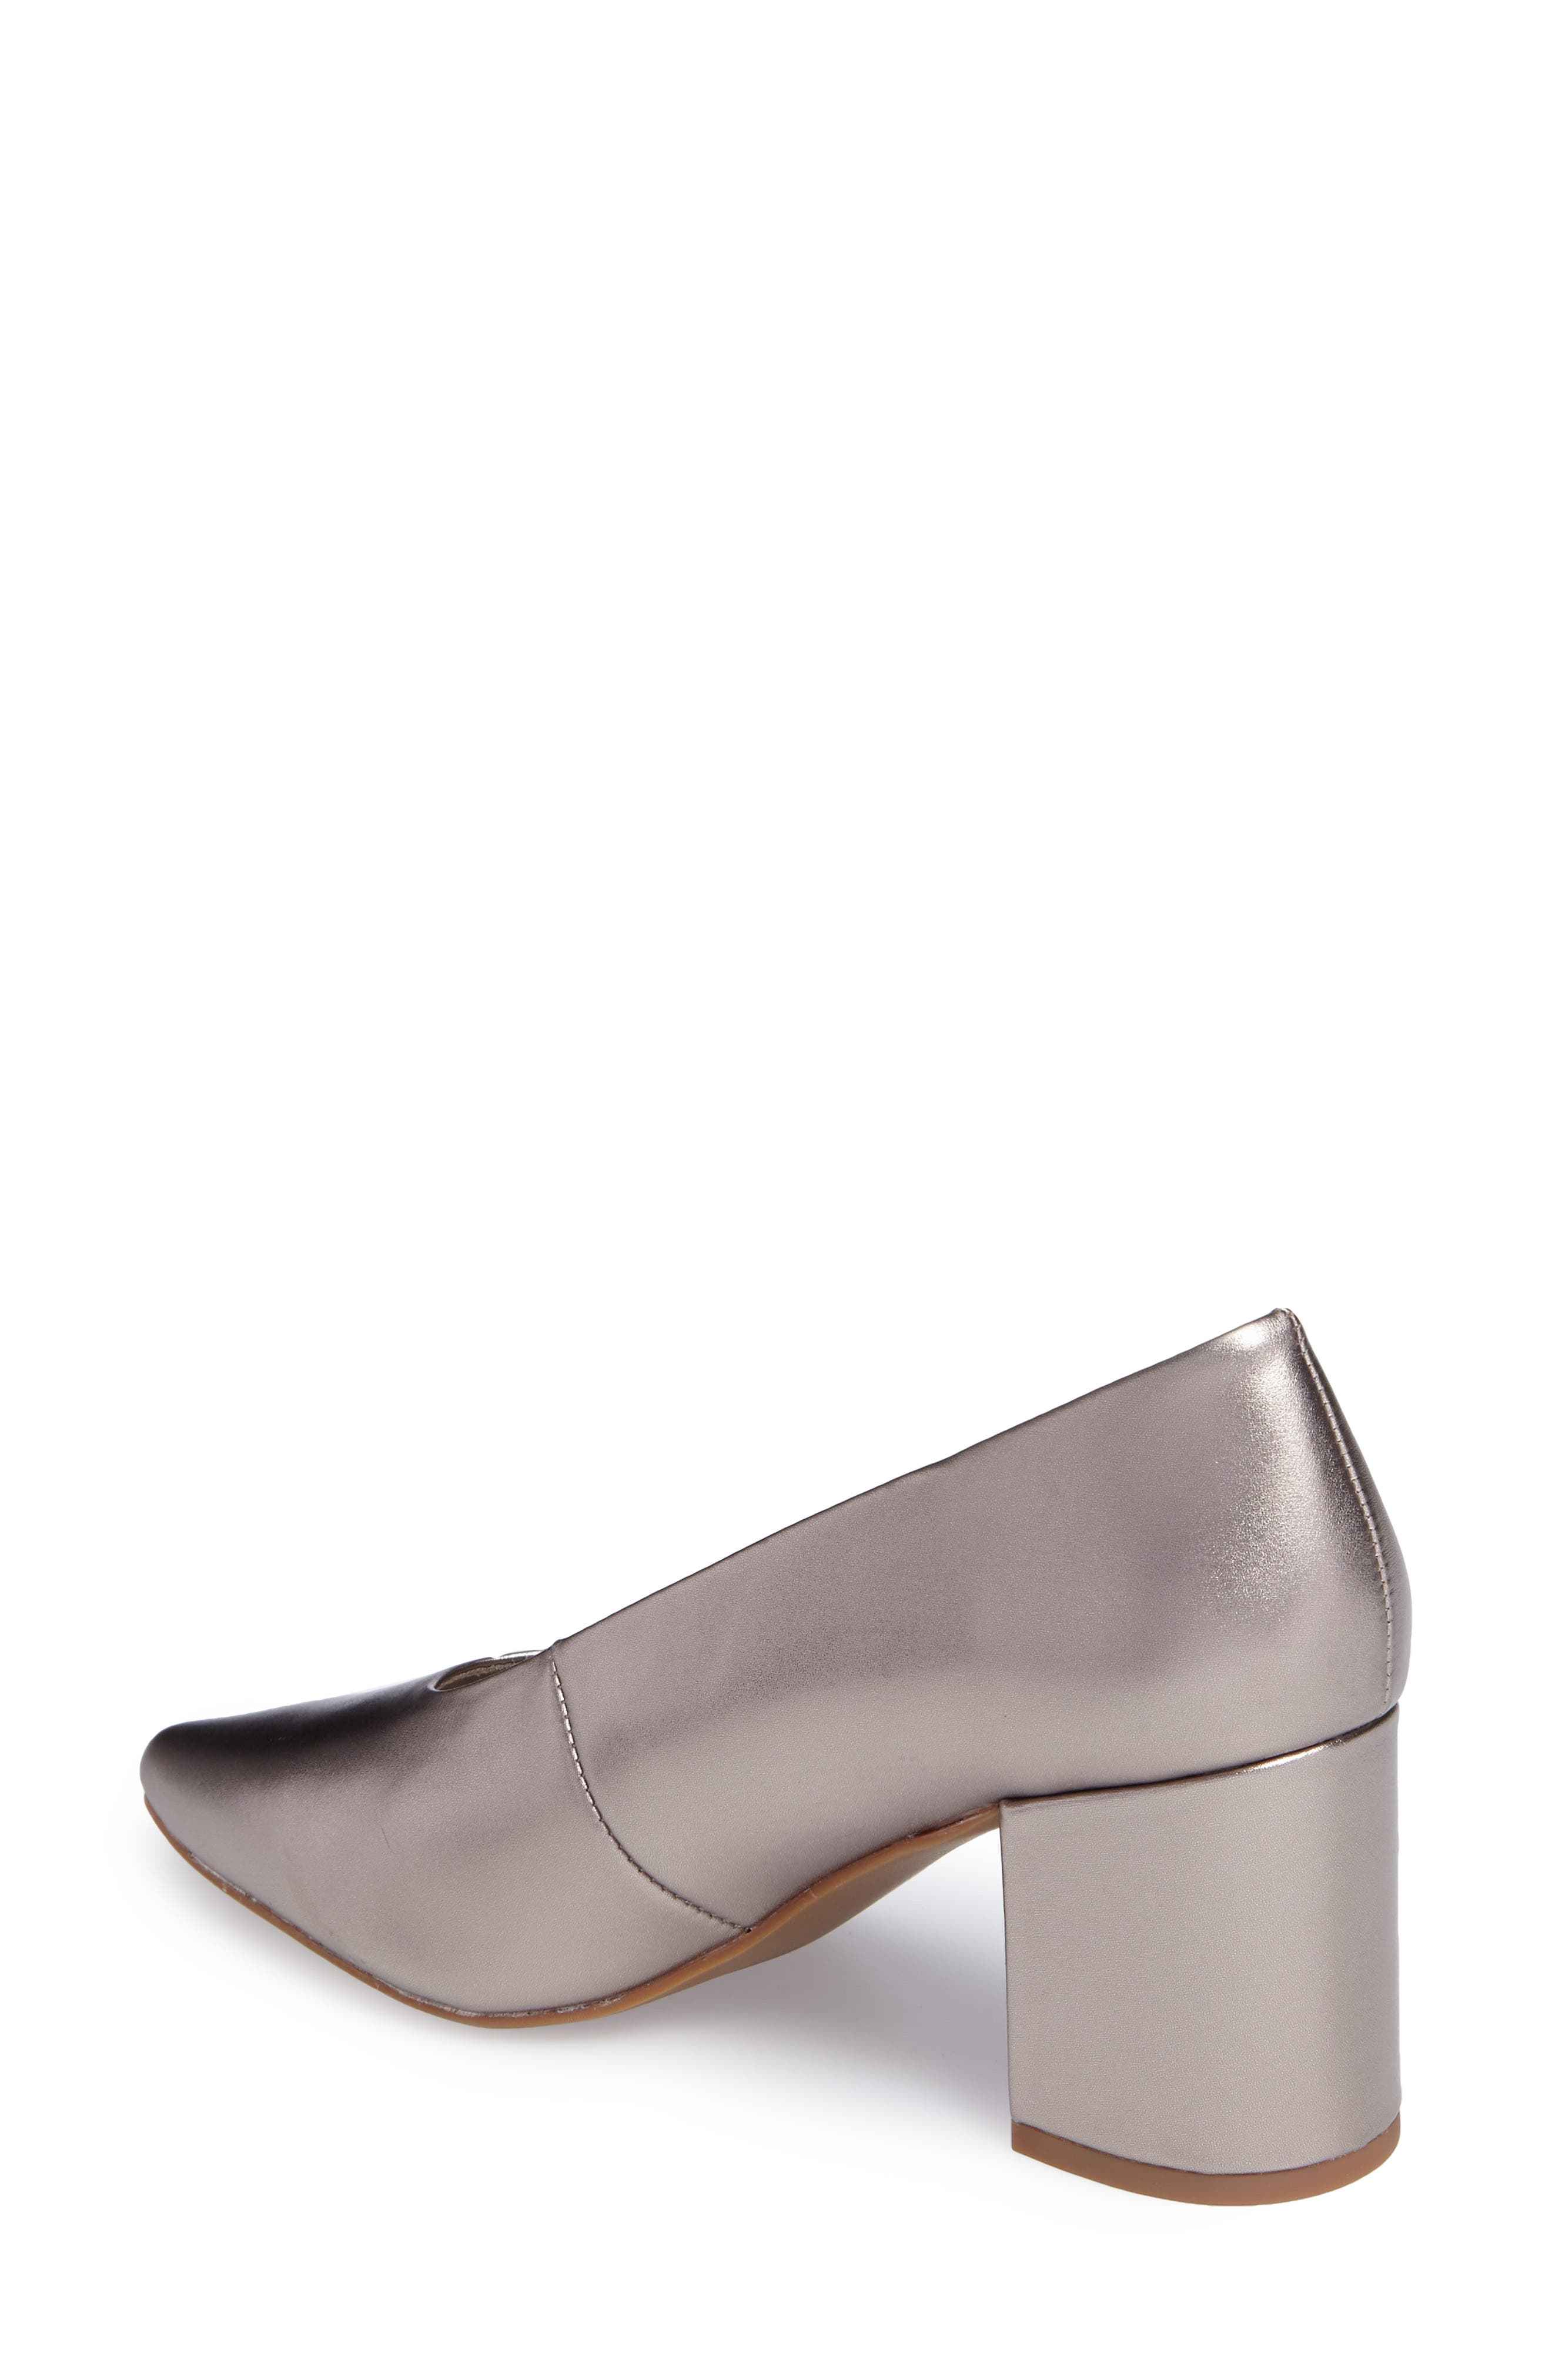 Rehearse Pointy Toe Pump,                             Alternate thumbnail 2, color,                             Pewter Leather